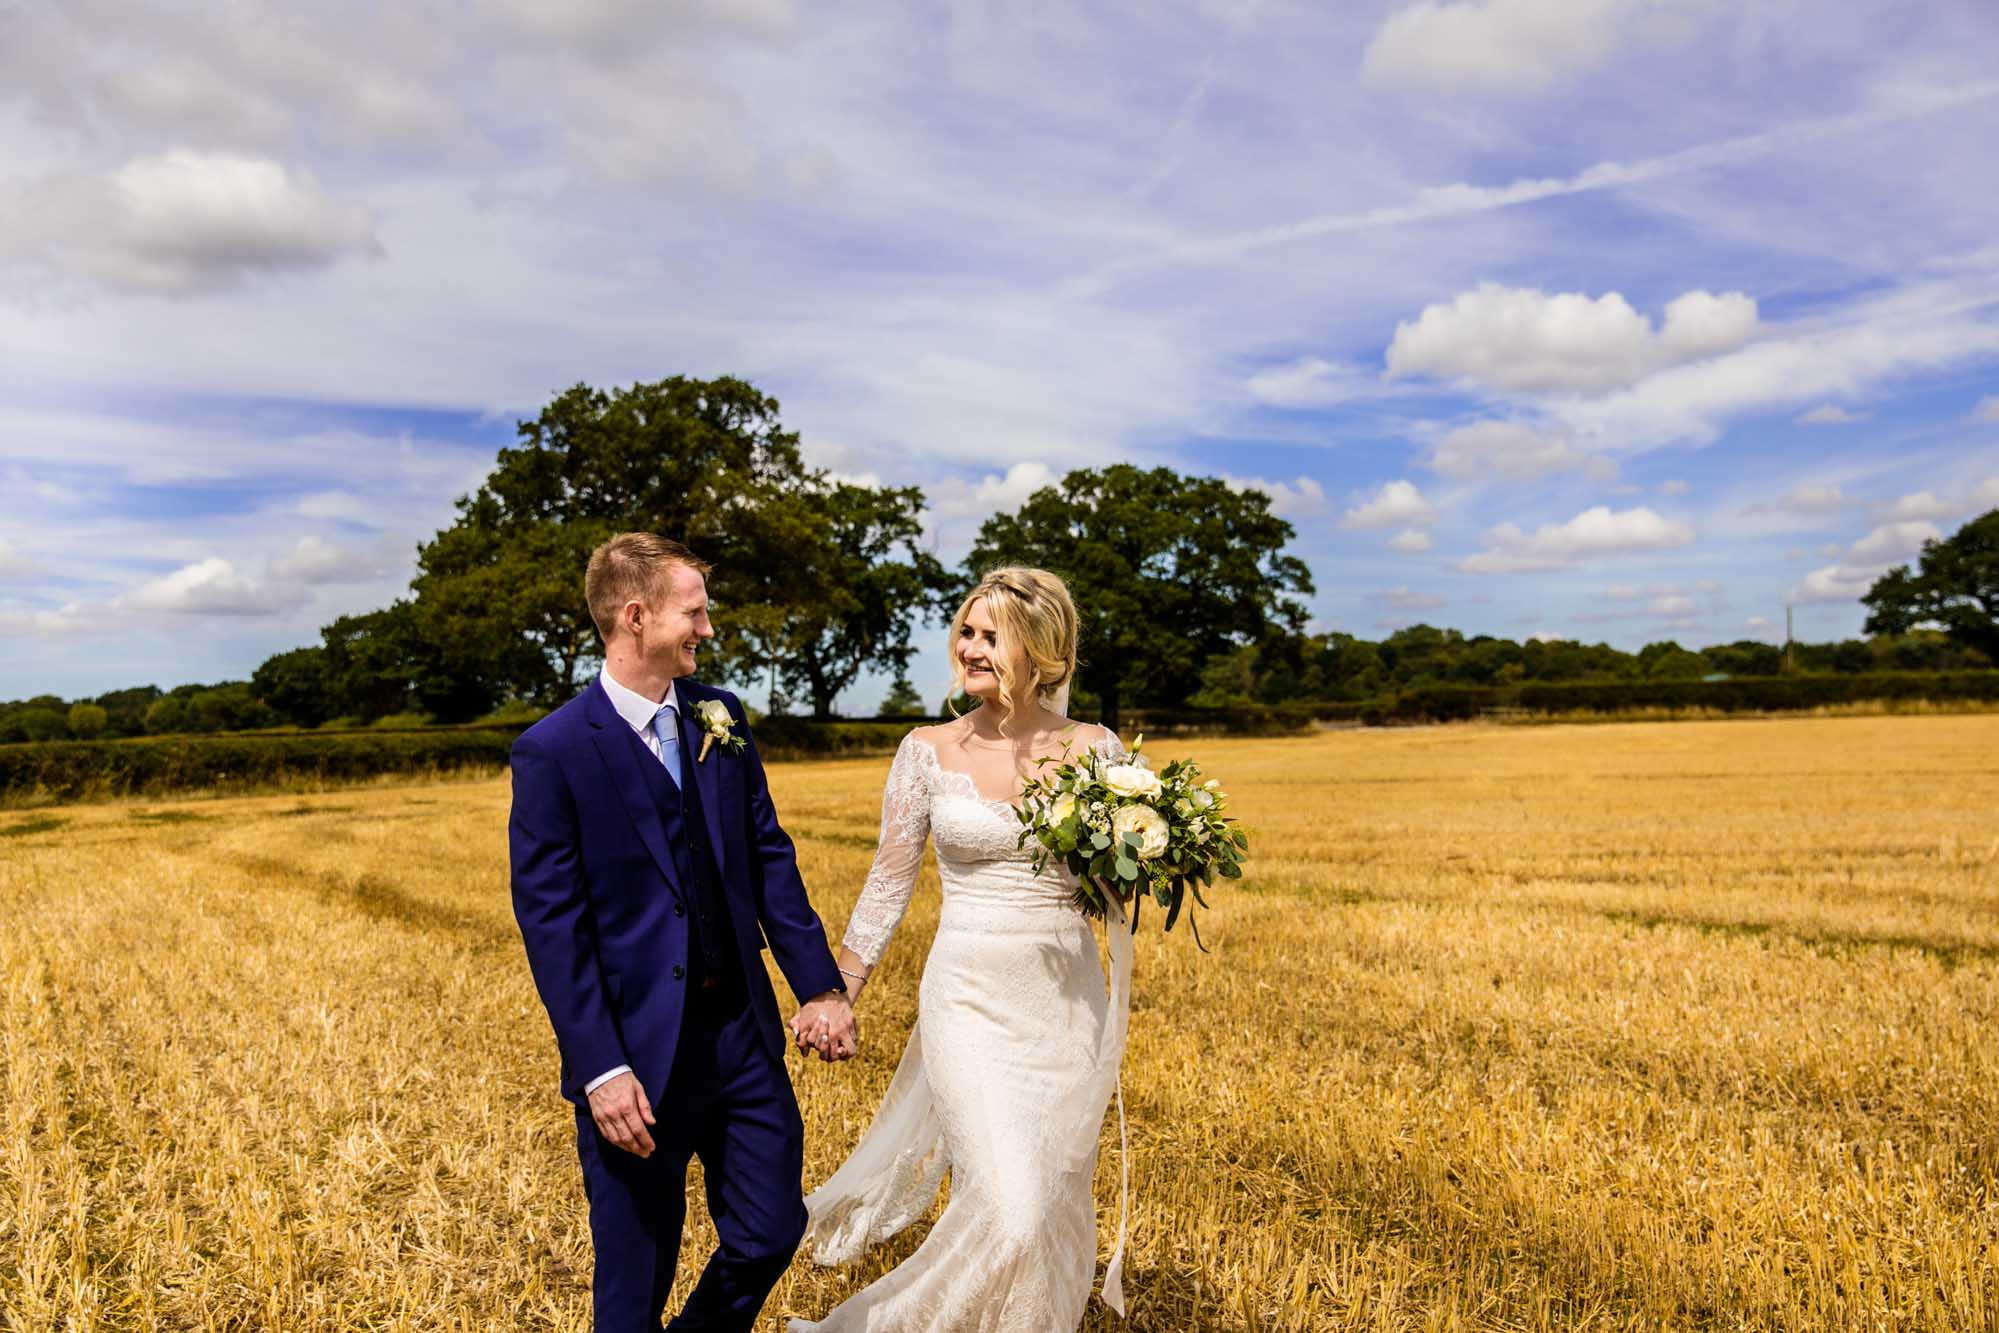 Stock Farm Wedding Barn Colourful Photographer